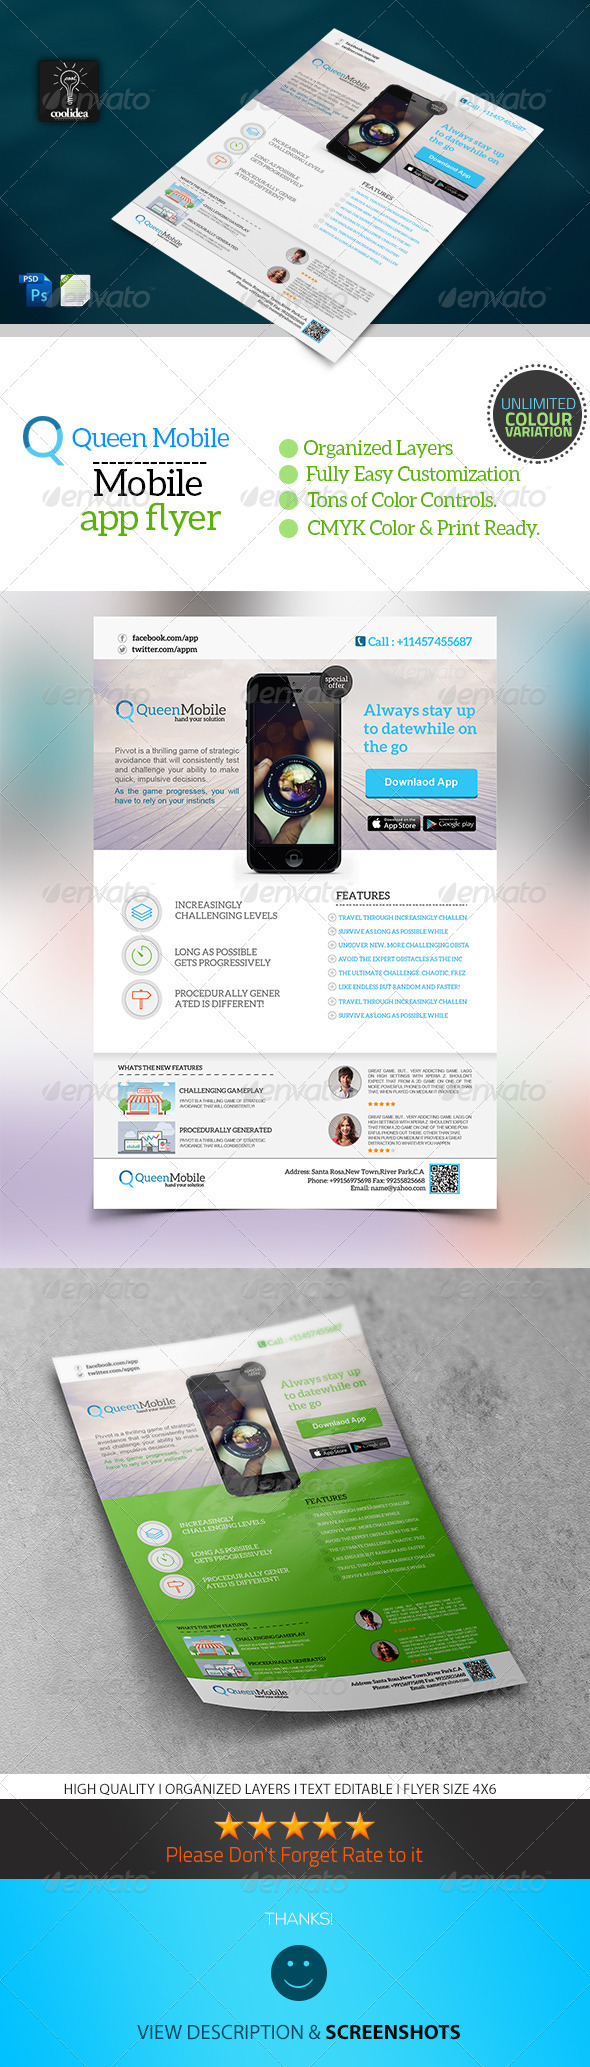 GraphicRiver Mobile App Flyer 6634988